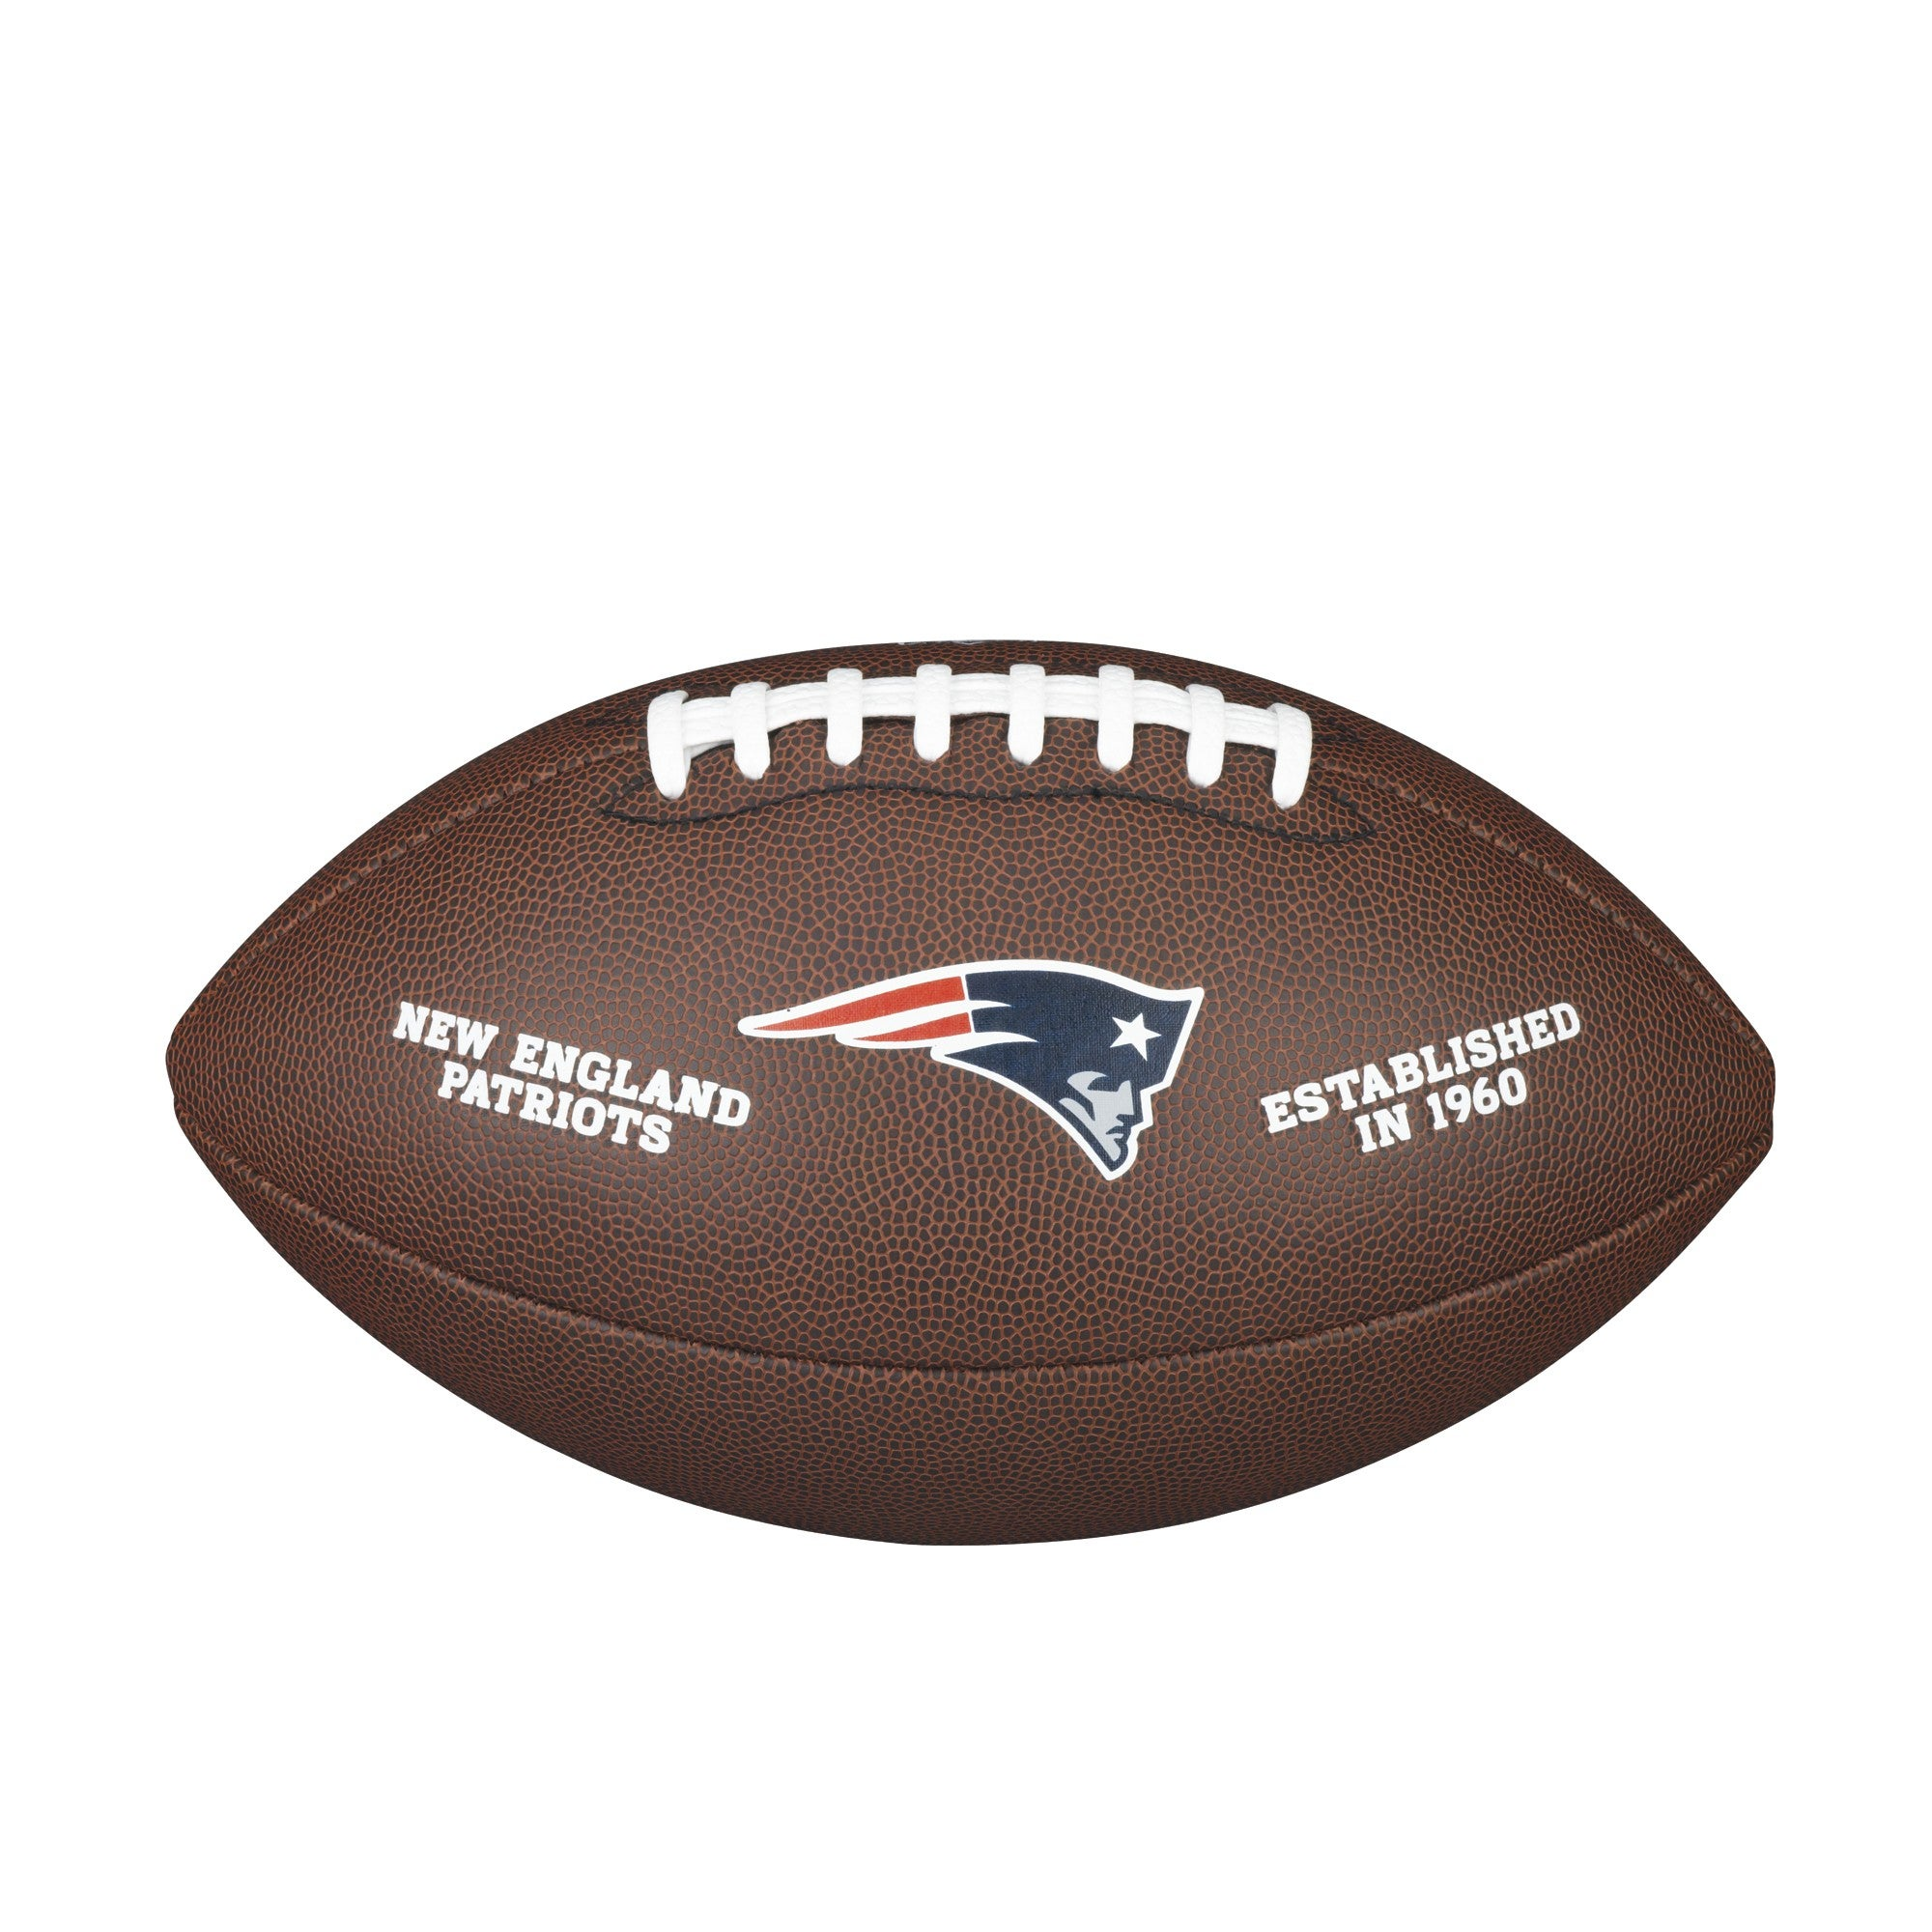 NFL TEAM LOGO COMPOSITE FOOTBALL - OFFICIAL, NEW ENGLAND PATRIOTS